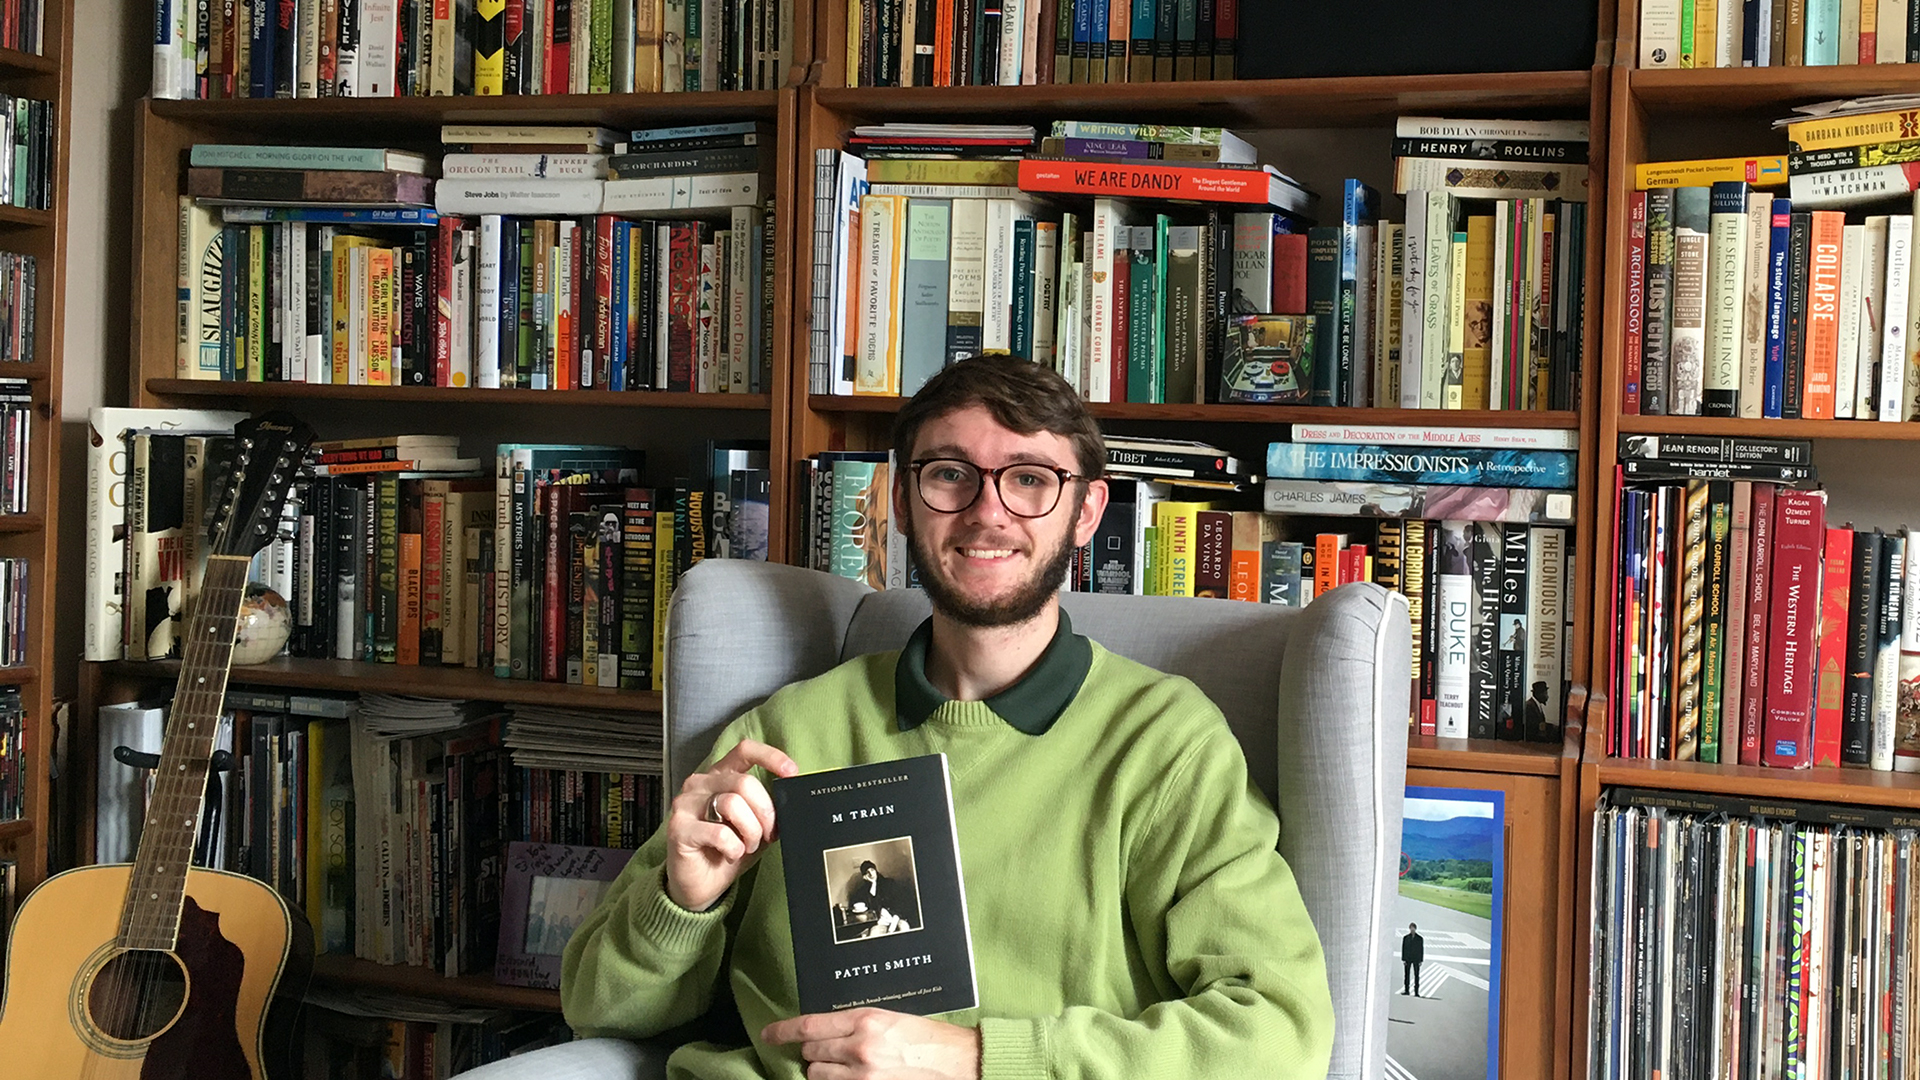 A young man in a green sweater holding a book in his hands as he sits in a chair. He is sitting in front of a massive wall of bookshelves, filled with books stored in a variety of directions.